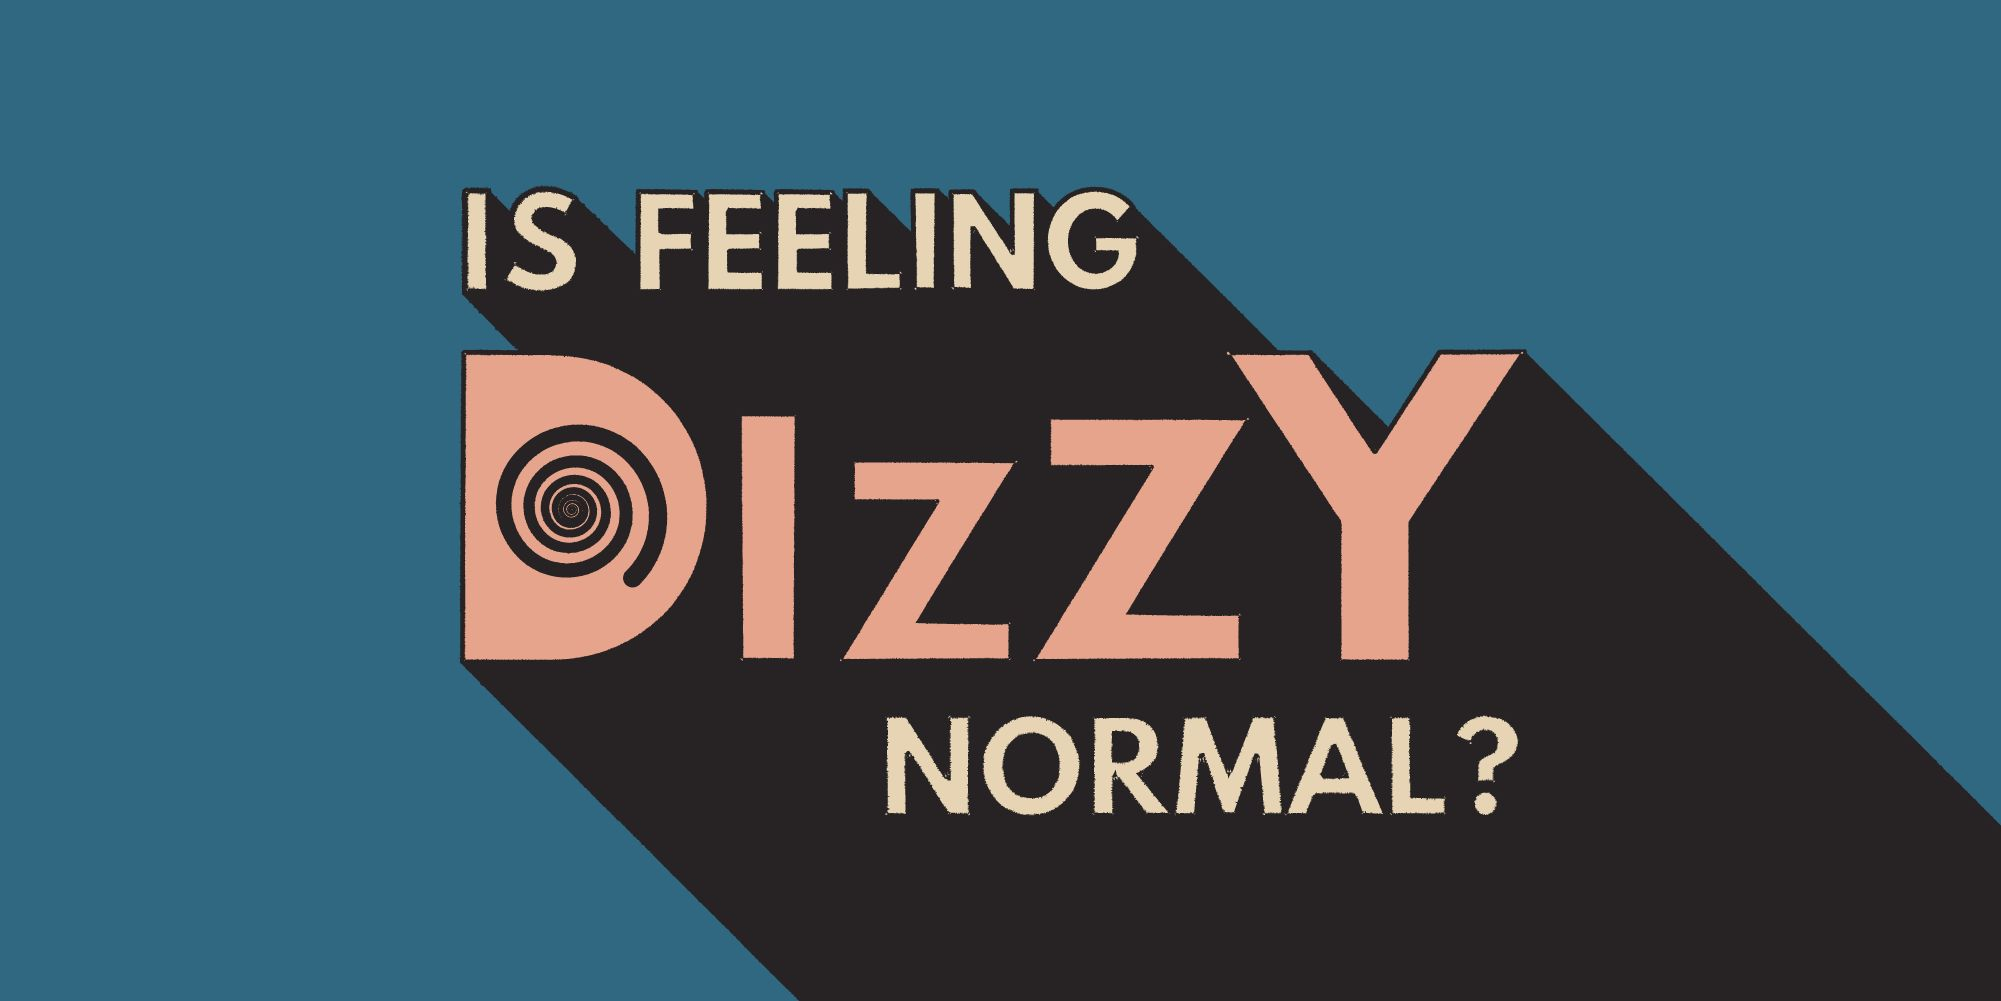 Why Am I So Dizzy? | HuffPost Life